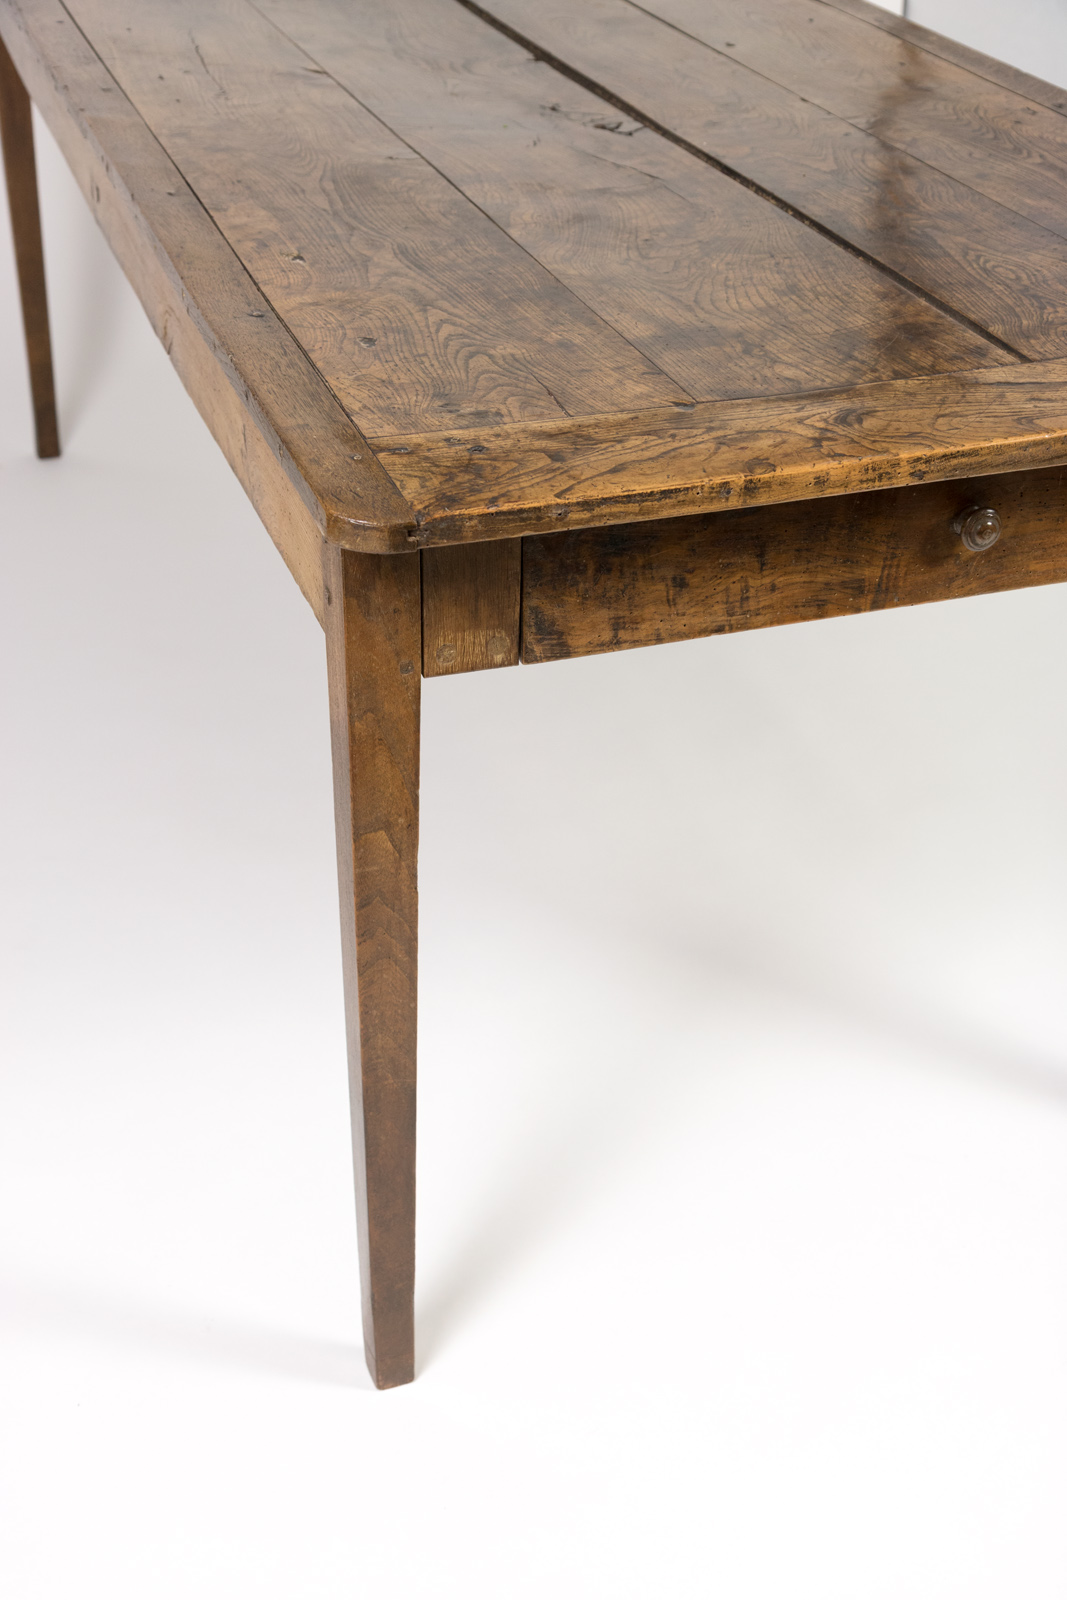 Charmant Garden Court Antiques, San Francisco   Very Rare Elm Farm Table With  Incredible Patina U0026